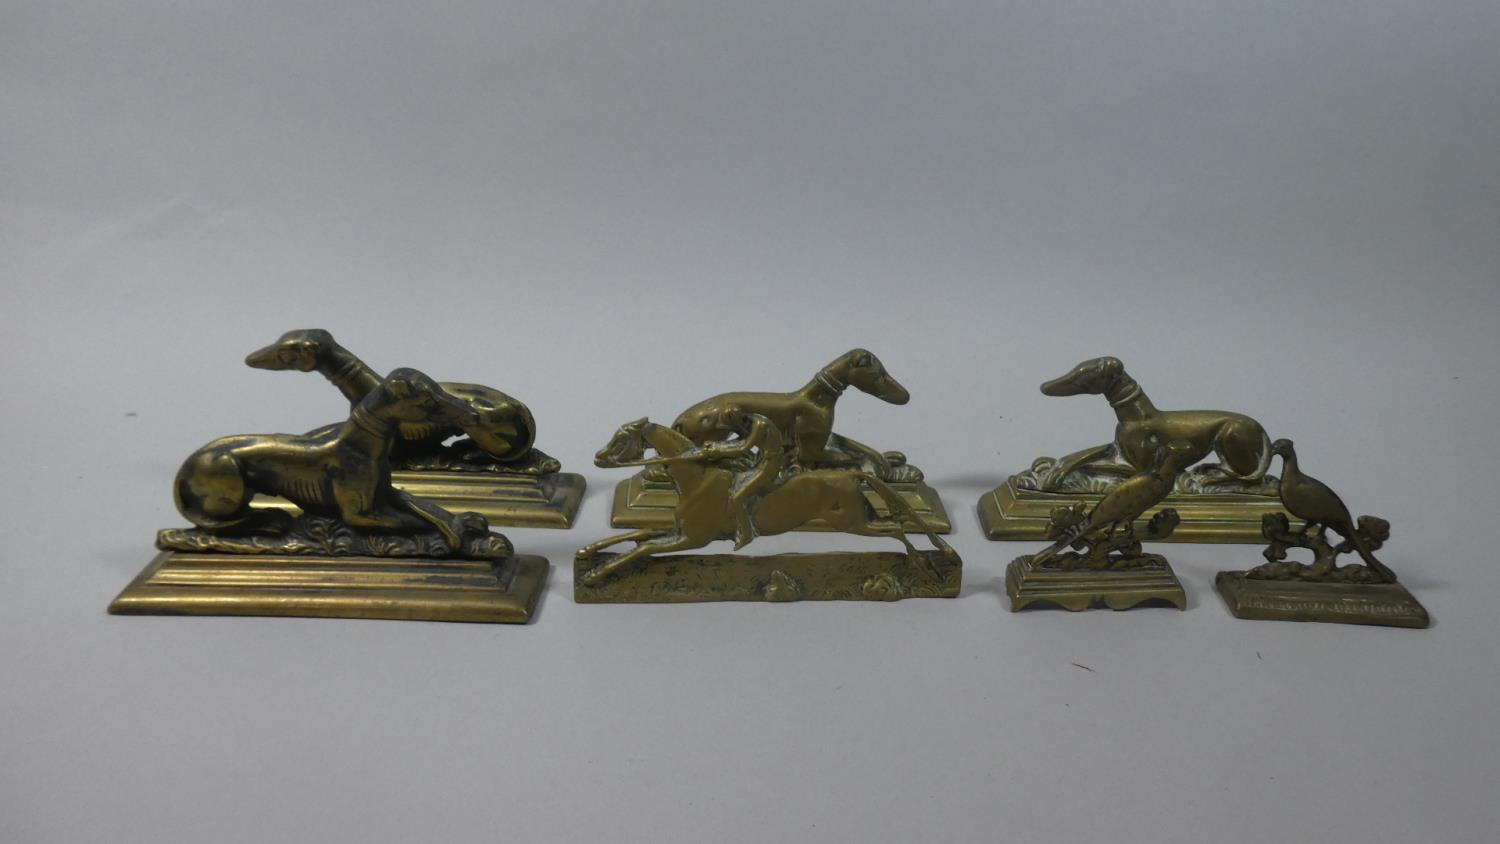 Lot 81 - A Collection of Victorian Brass Fireside Ornaments in the Form of Greyhounds, Pheasants and